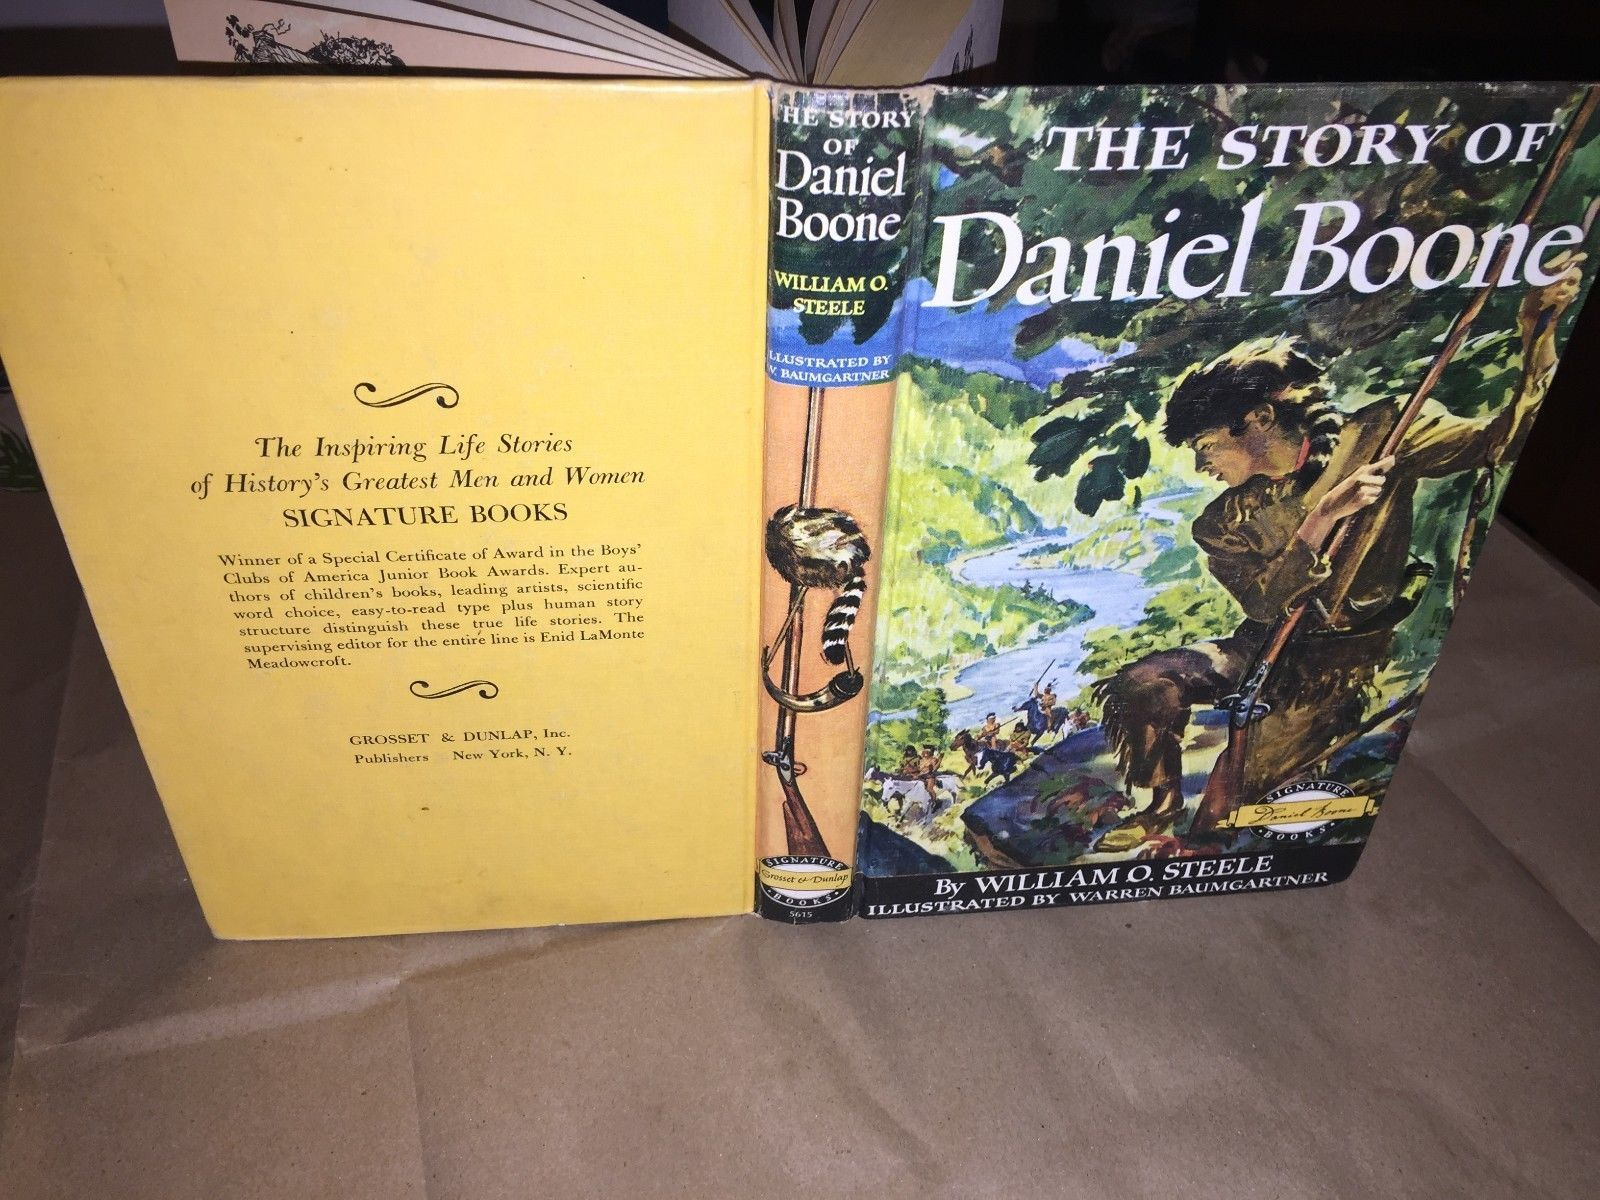 HB, 1953, The Story of Daniel Boone by William O. Steele, Signature Book